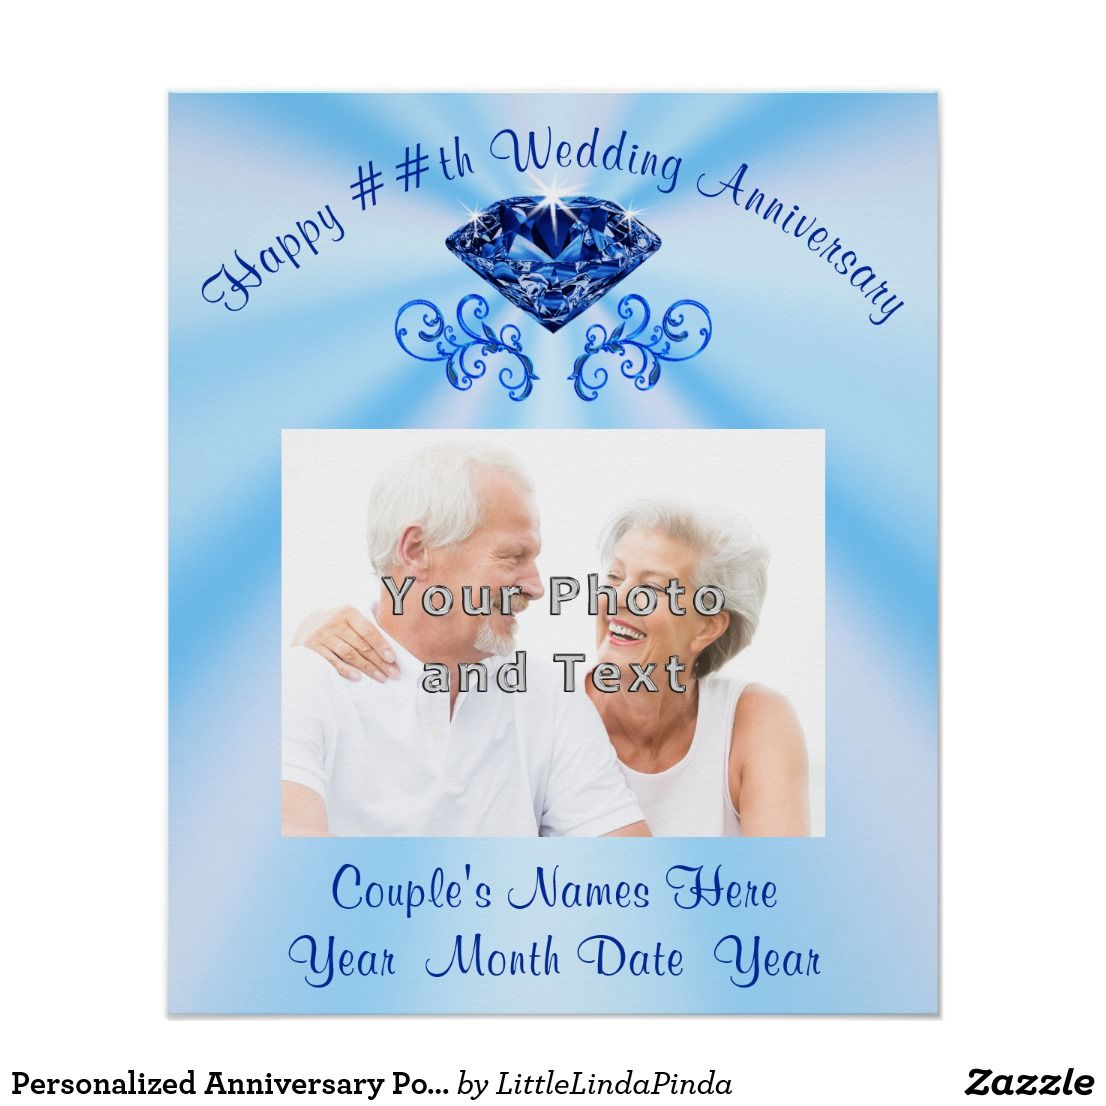 Personalized Anniversary Poster, Photo and Text Poster